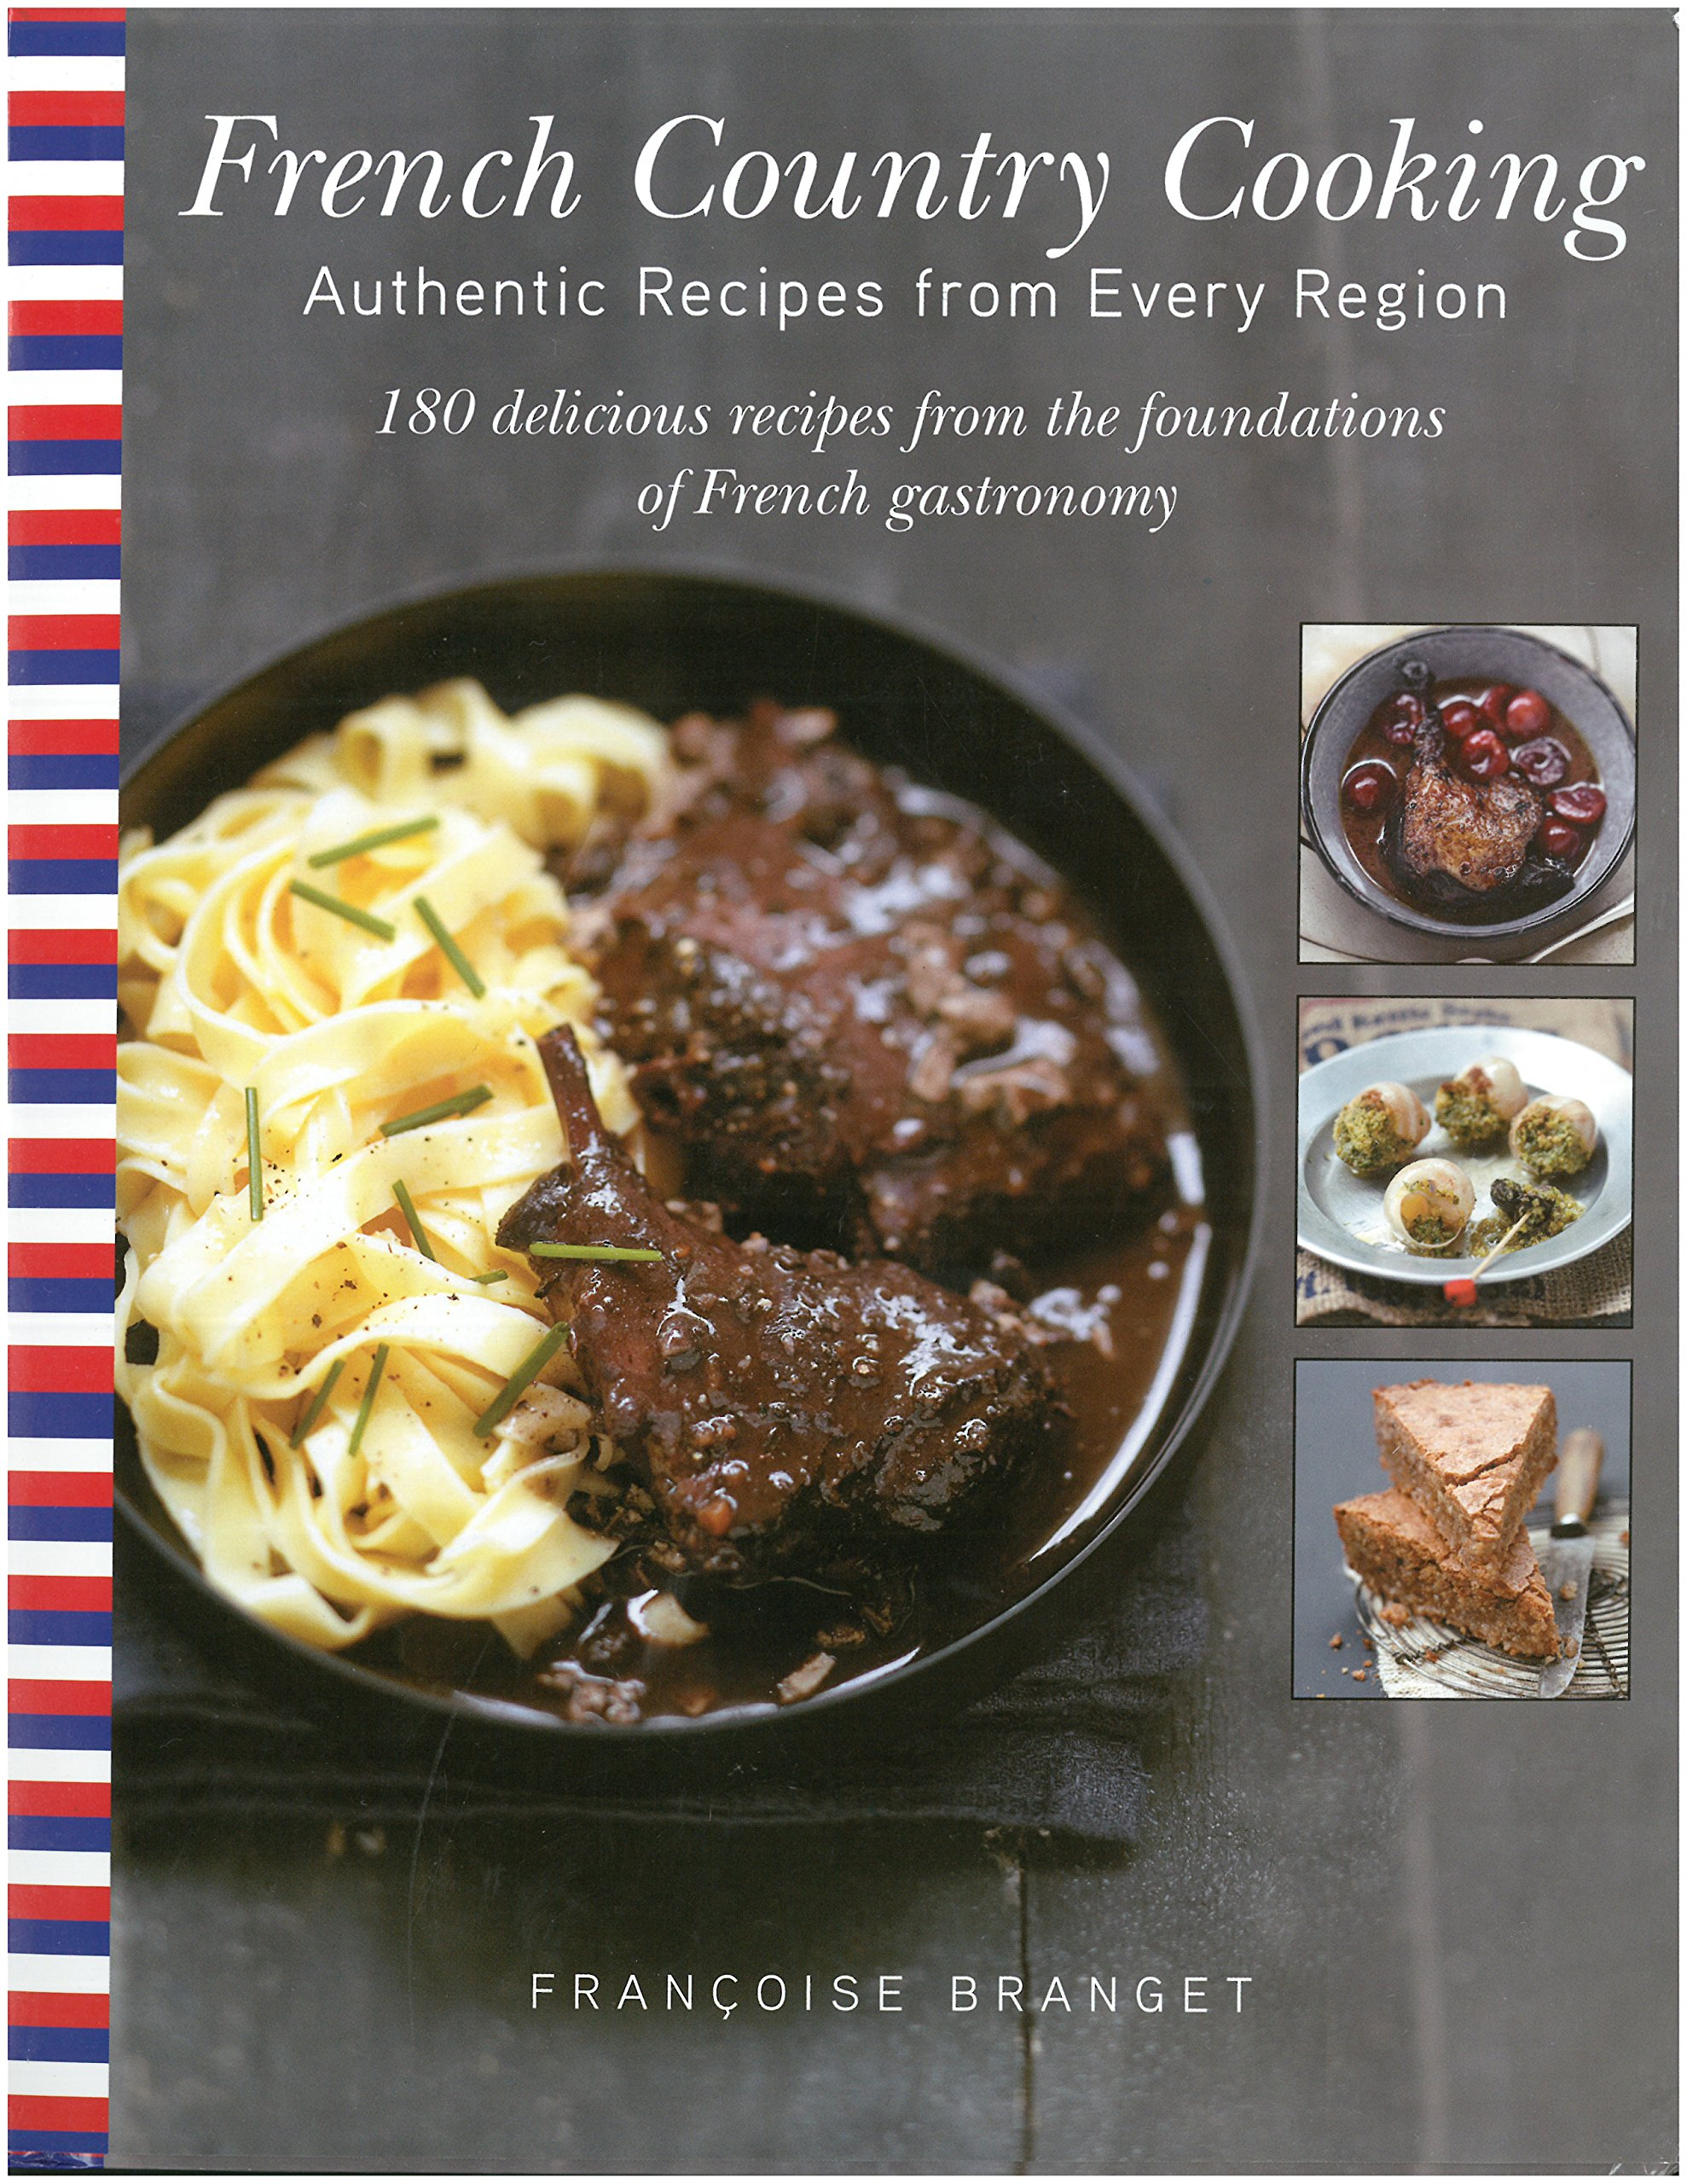 French Country Cooking Authentic Recipes product image